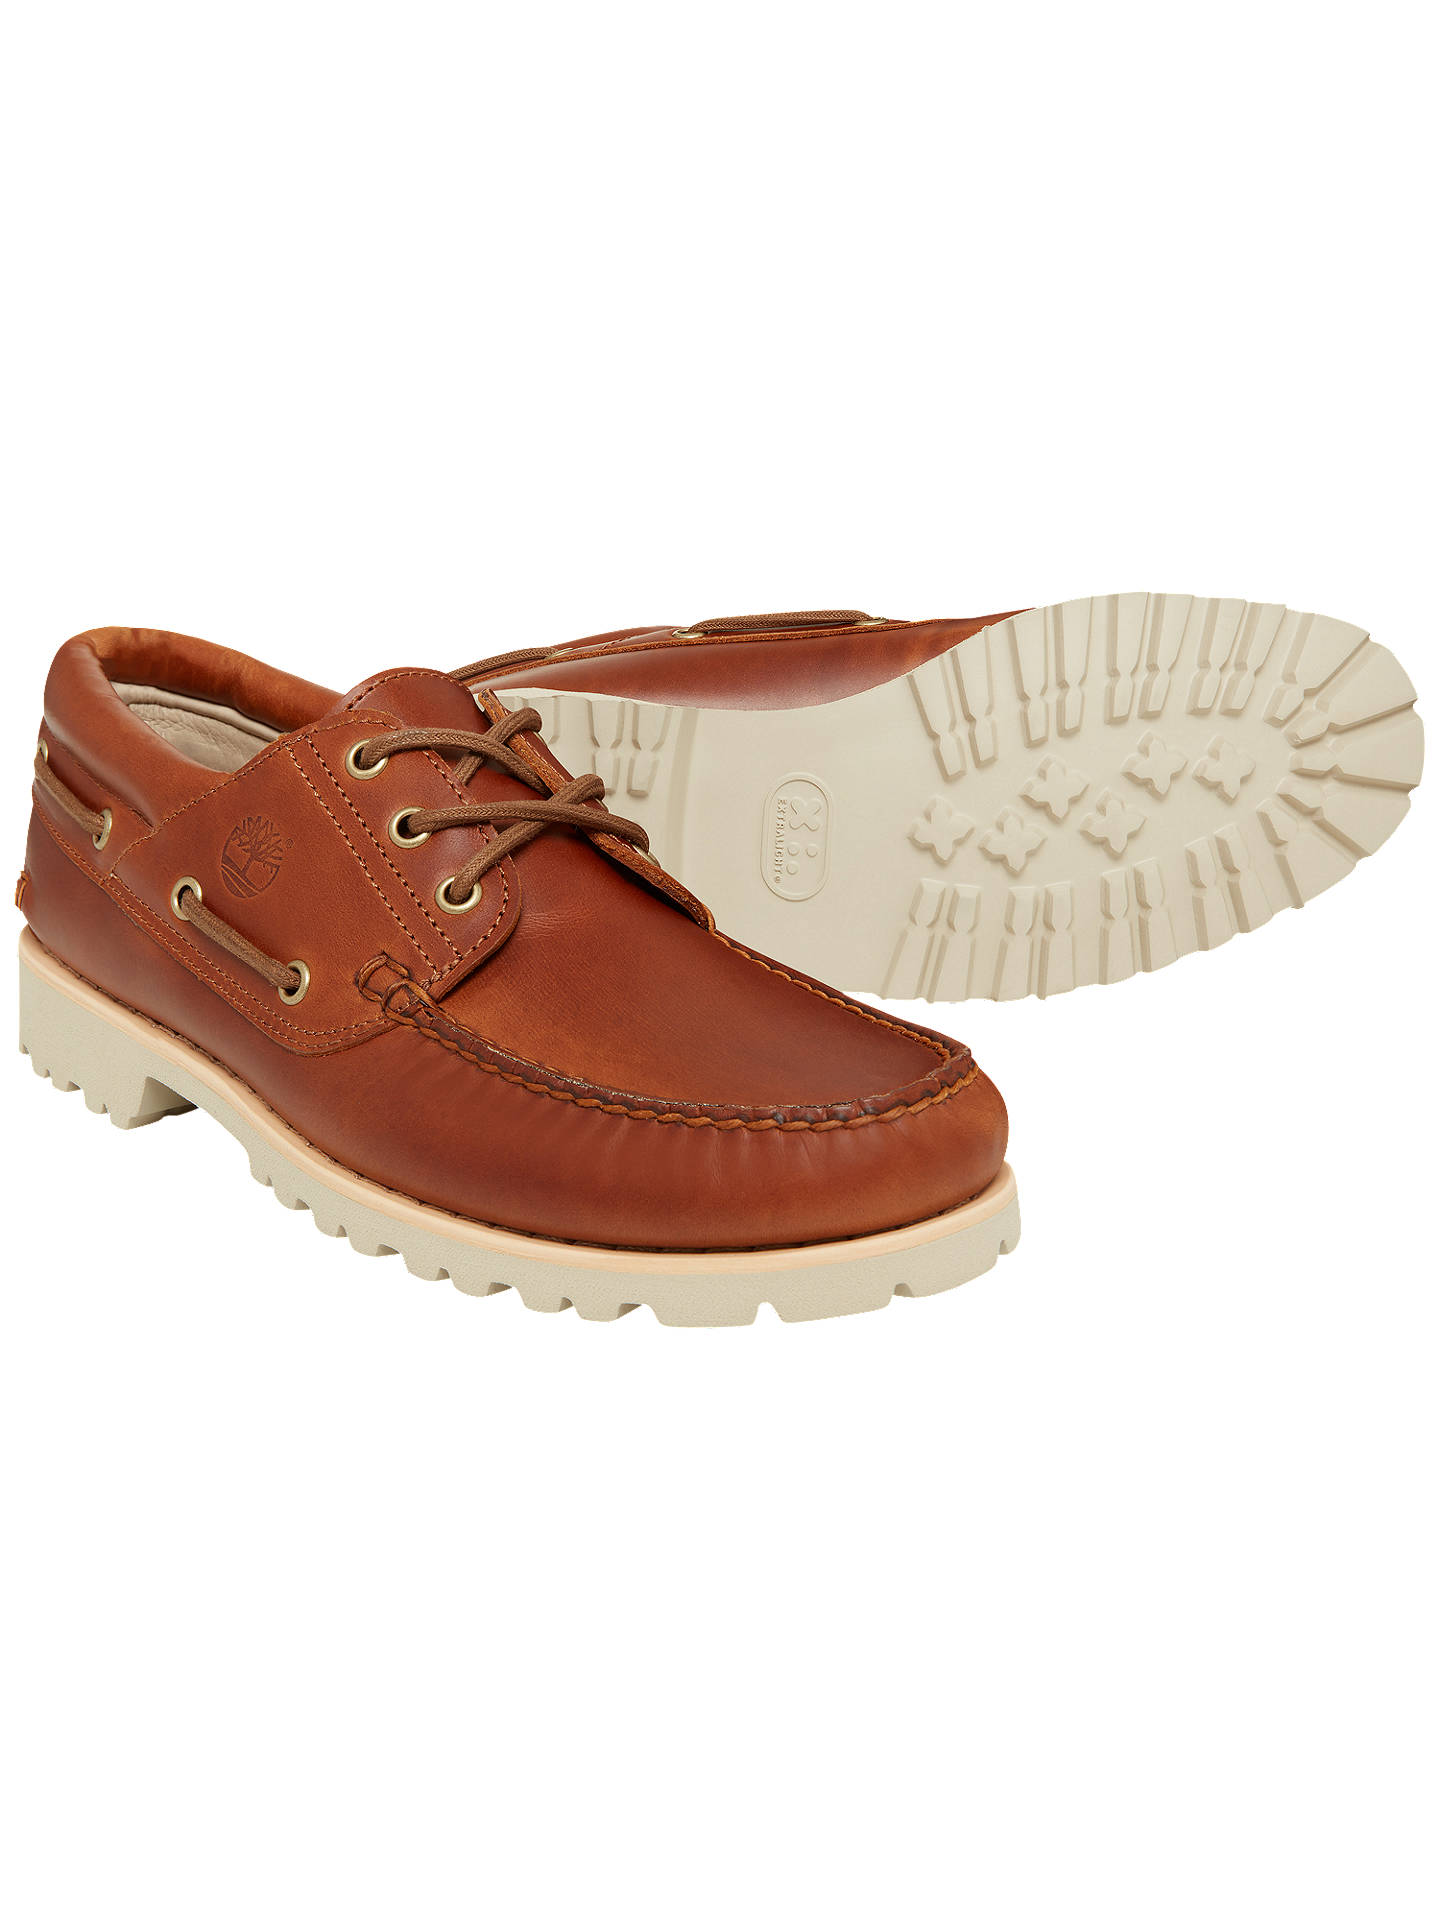 Timberland Chilmark Boat Shoes, Brown at John Lewis & Partners